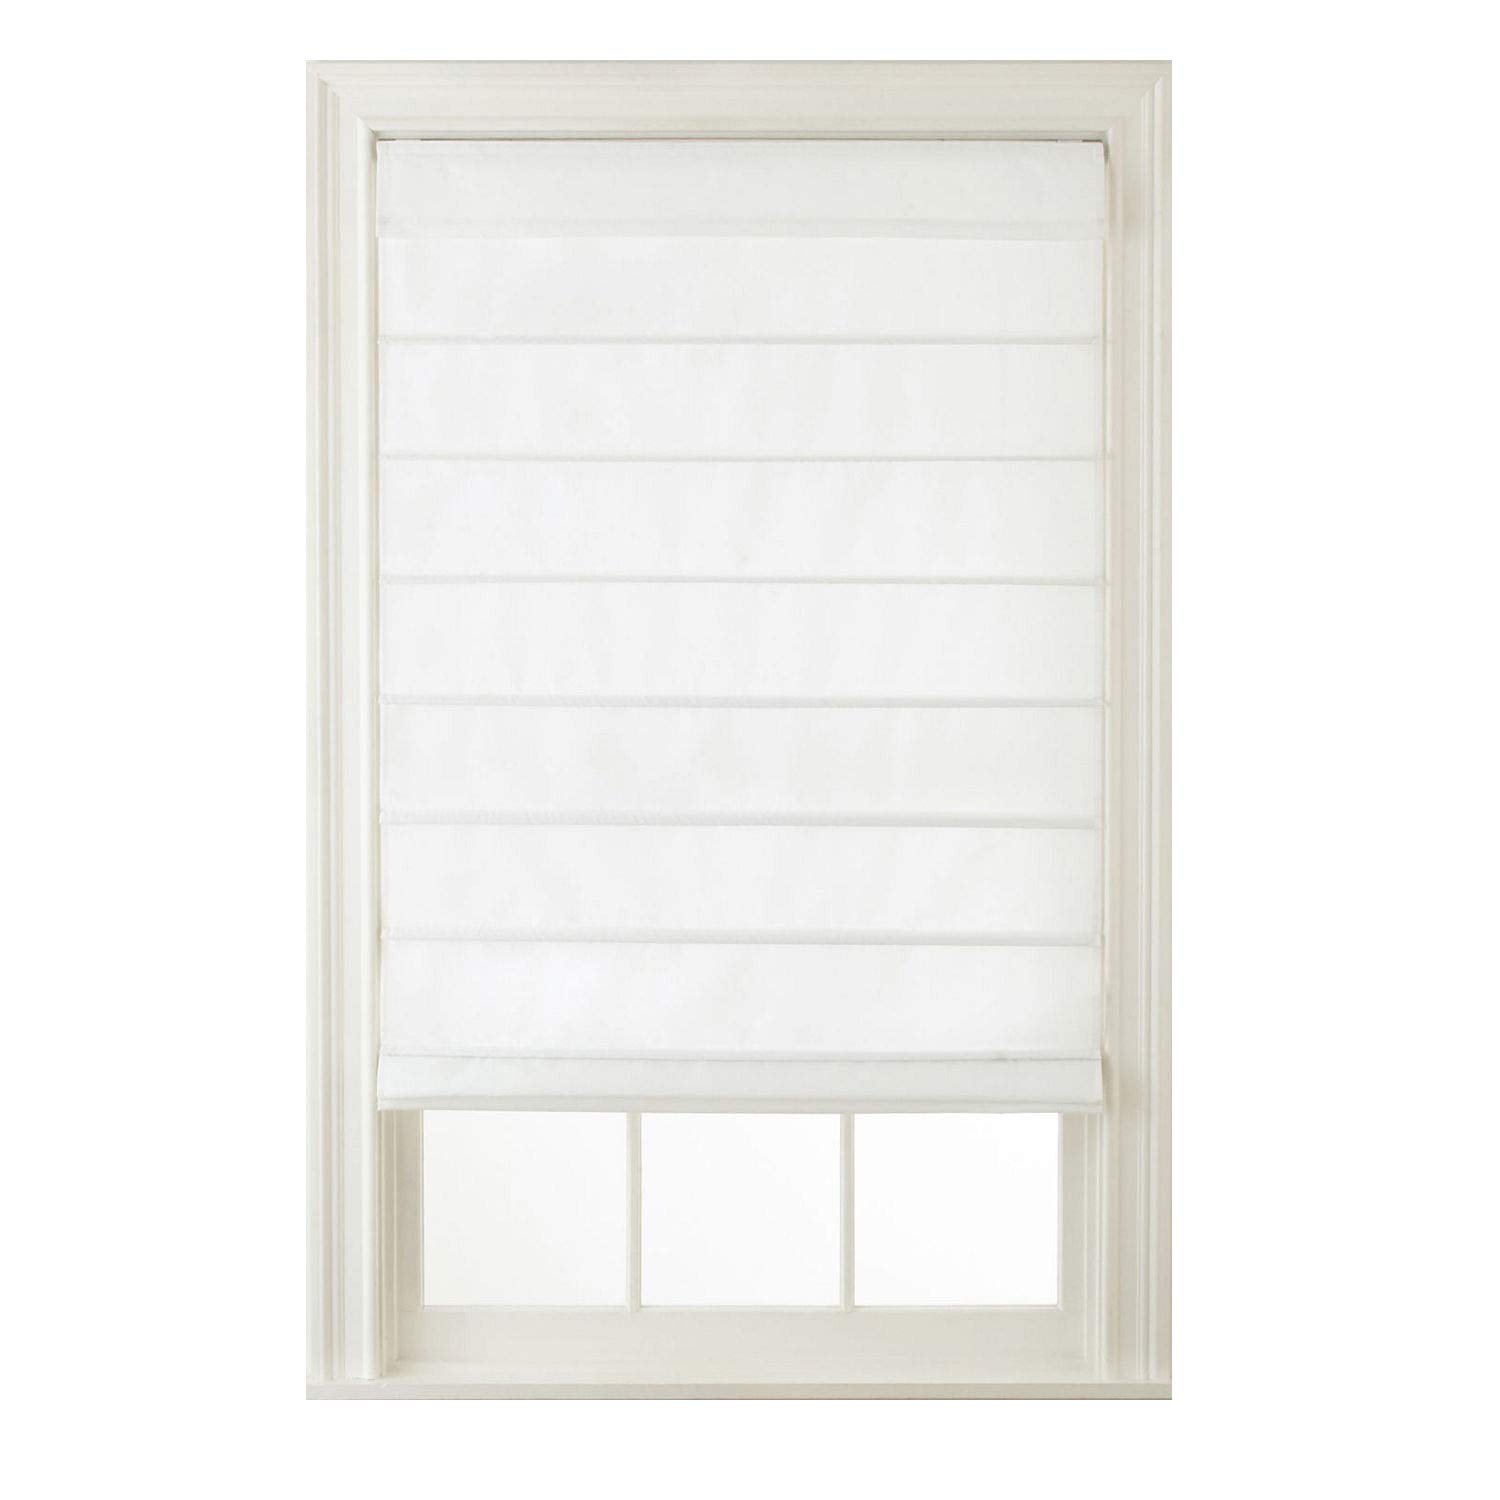 Window Blind Store Cordless Hanna Roman Shade White 31x64 by Window Blind Store